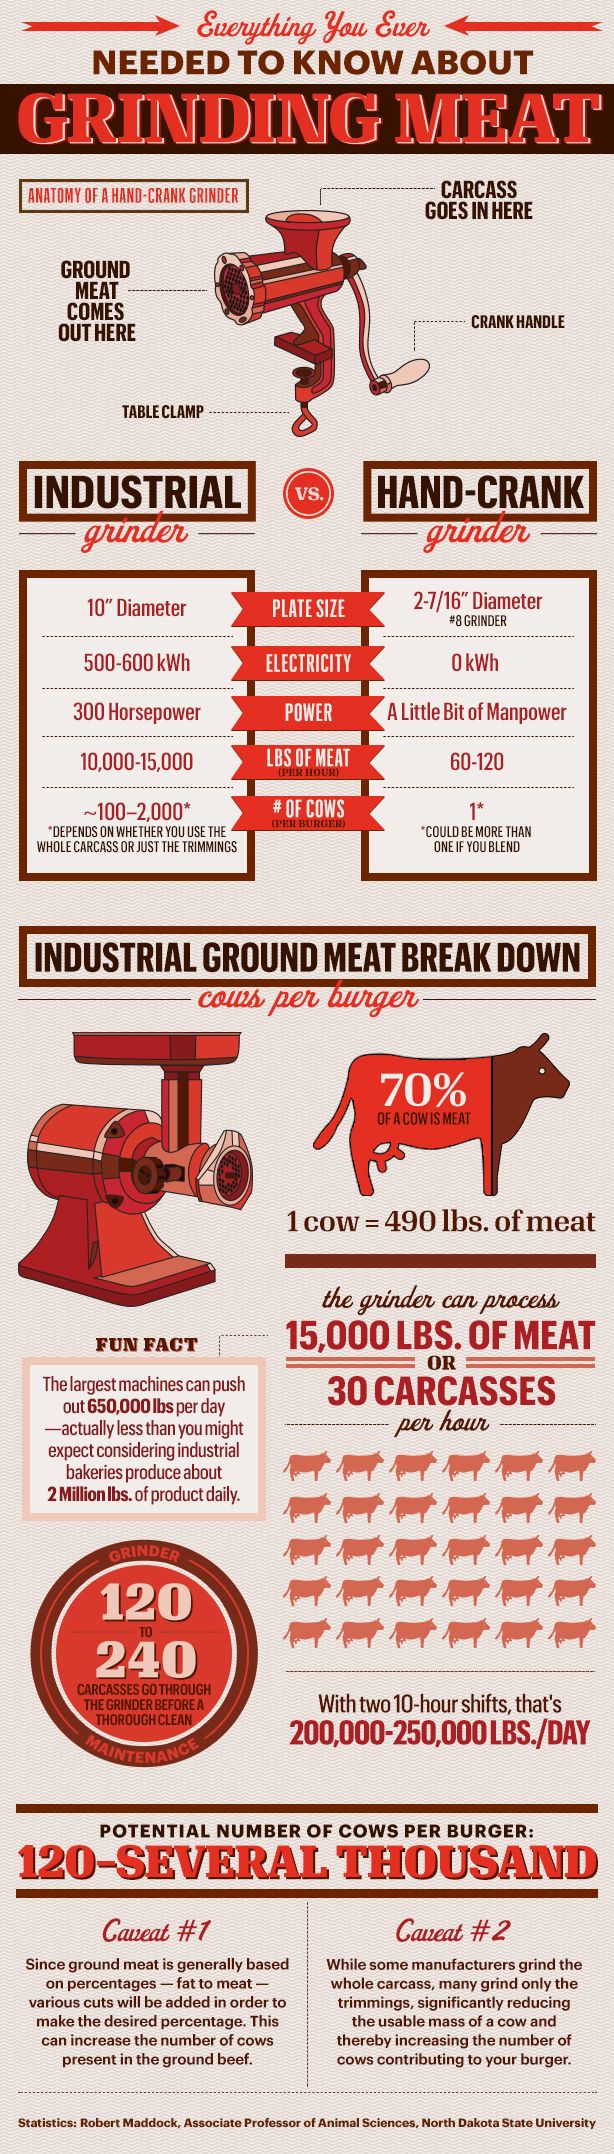 Meat Grinder Statistics - Why You Should Buy a Meat Grinder - Esquire